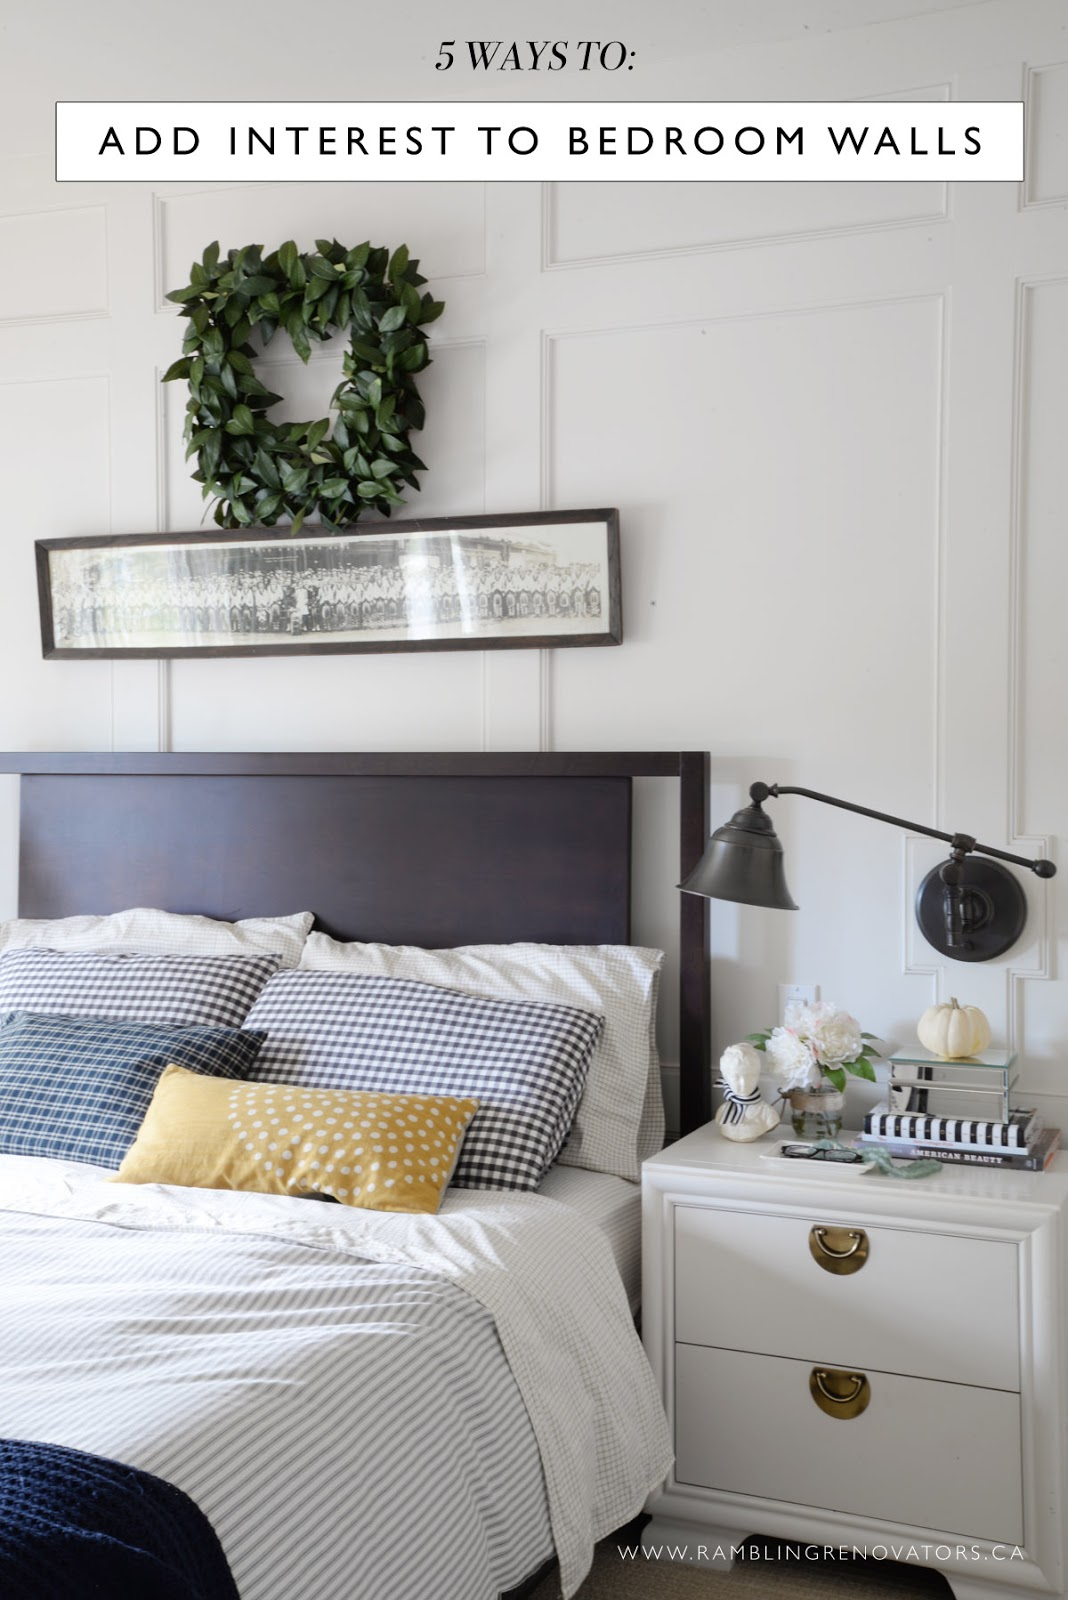 5 ways to add interest to bedroom walls | Ramblingrenovators.ca